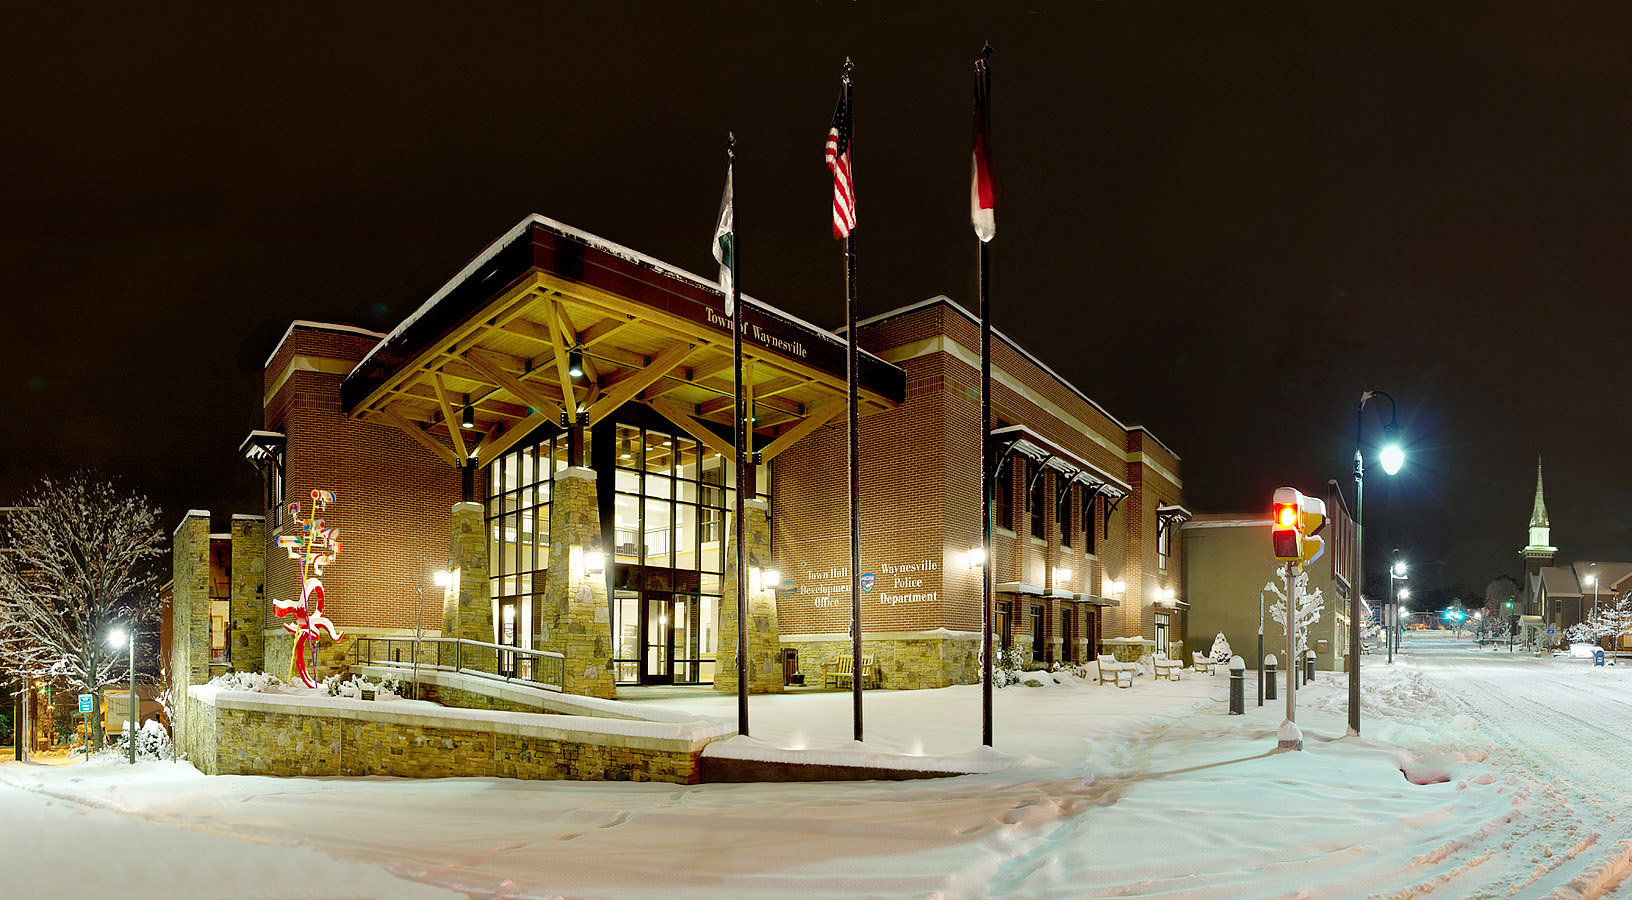 ADW-Civic-Town-Hall-Police-Waynesville-NC-Exterior.jpg